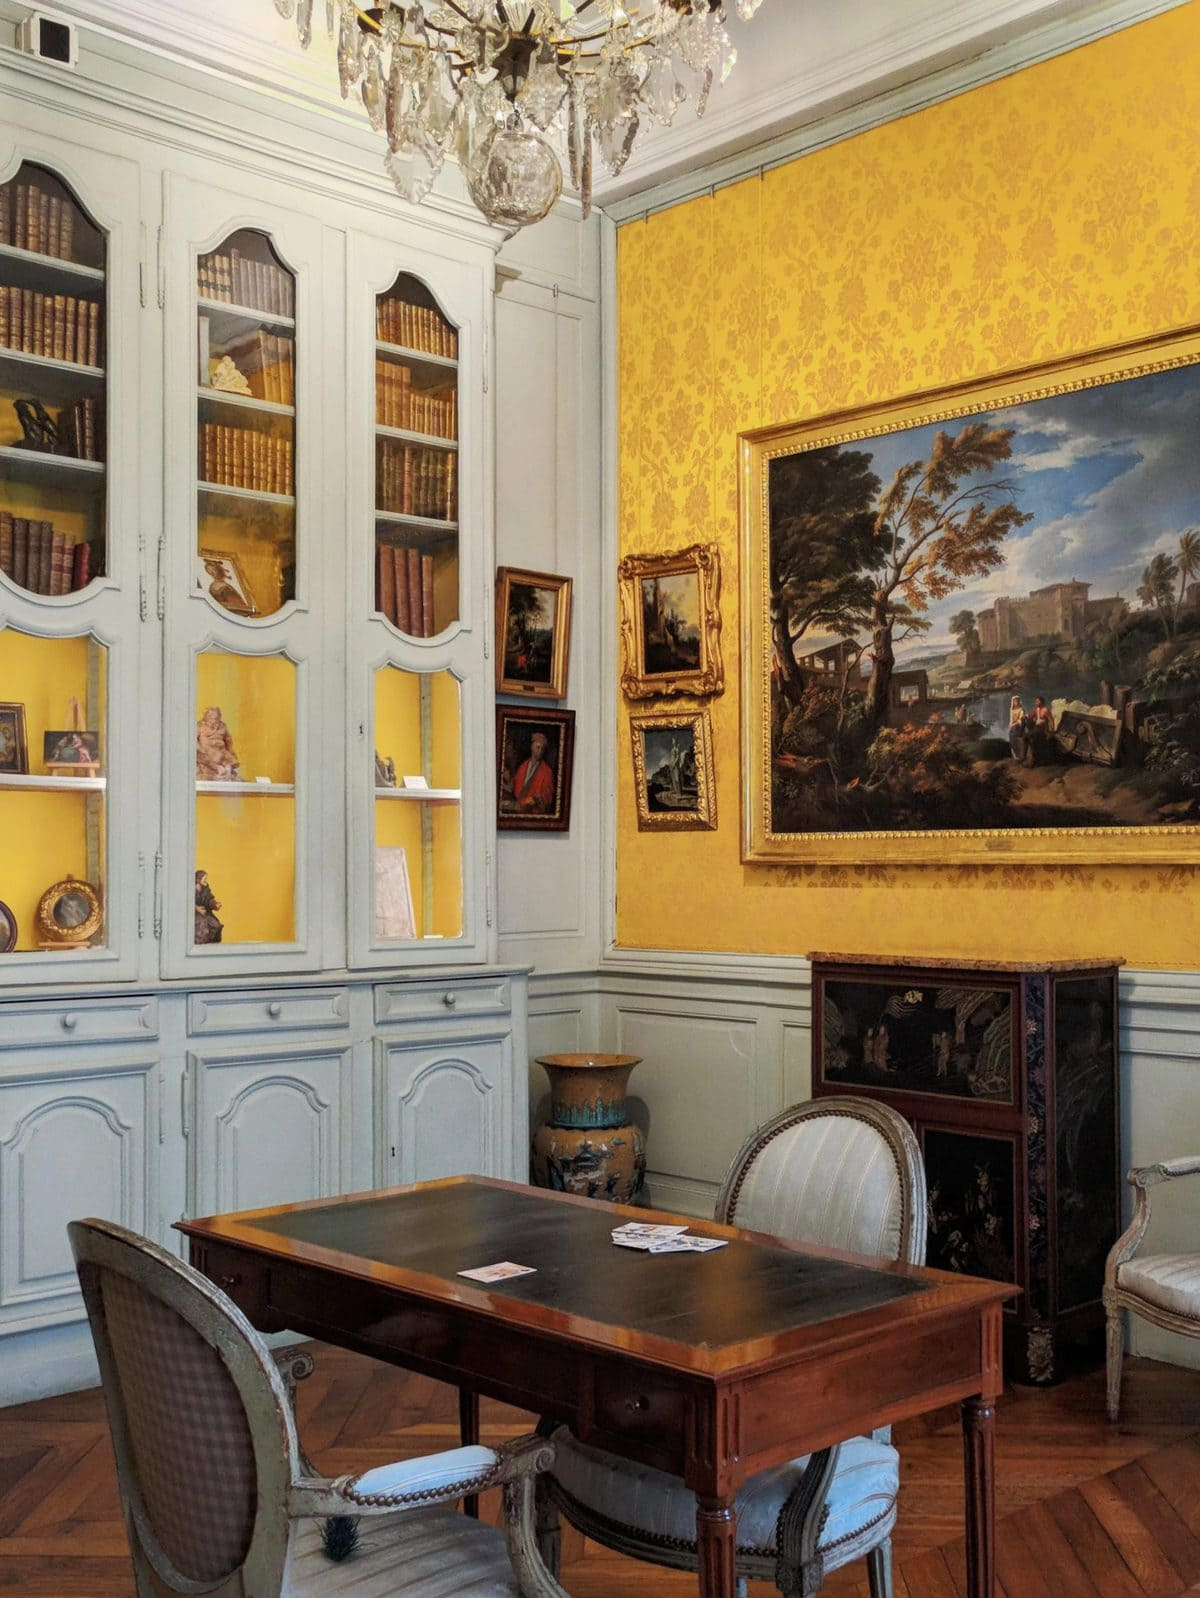 A mint and yellow colored room at the Musee Magnin in Dijon, France